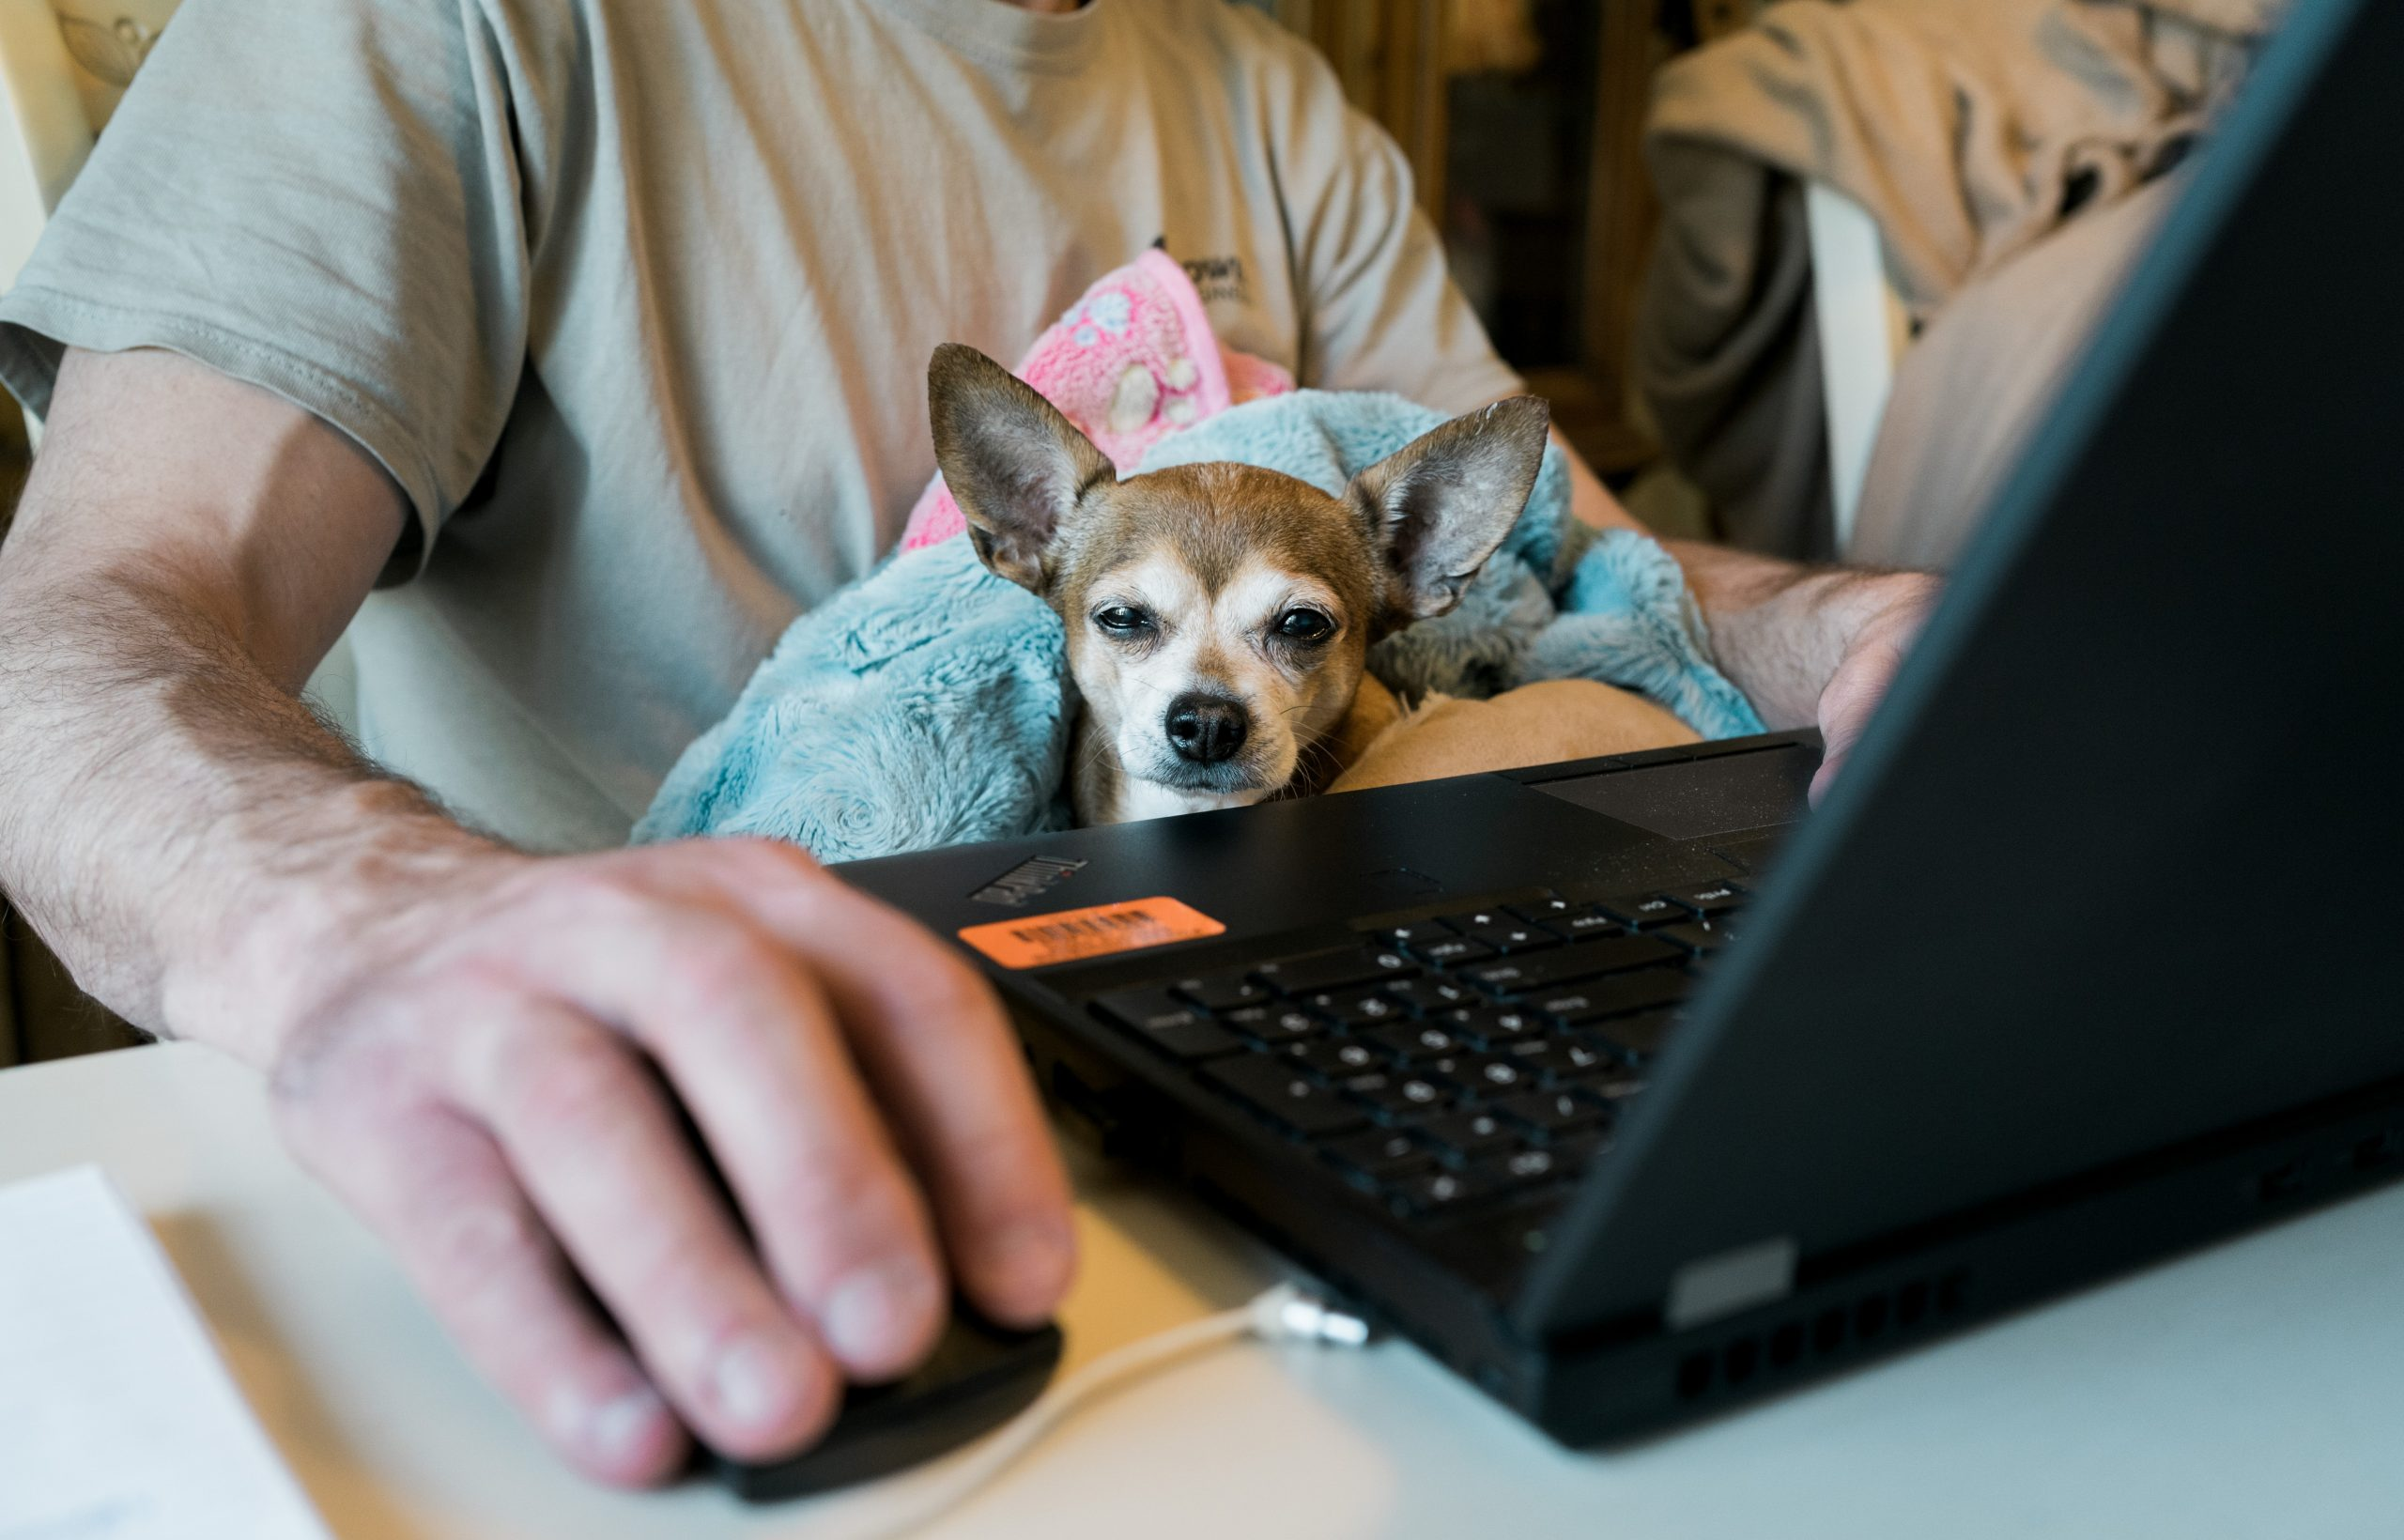 dog and laptop - tips for working from home - Petros - good mental health